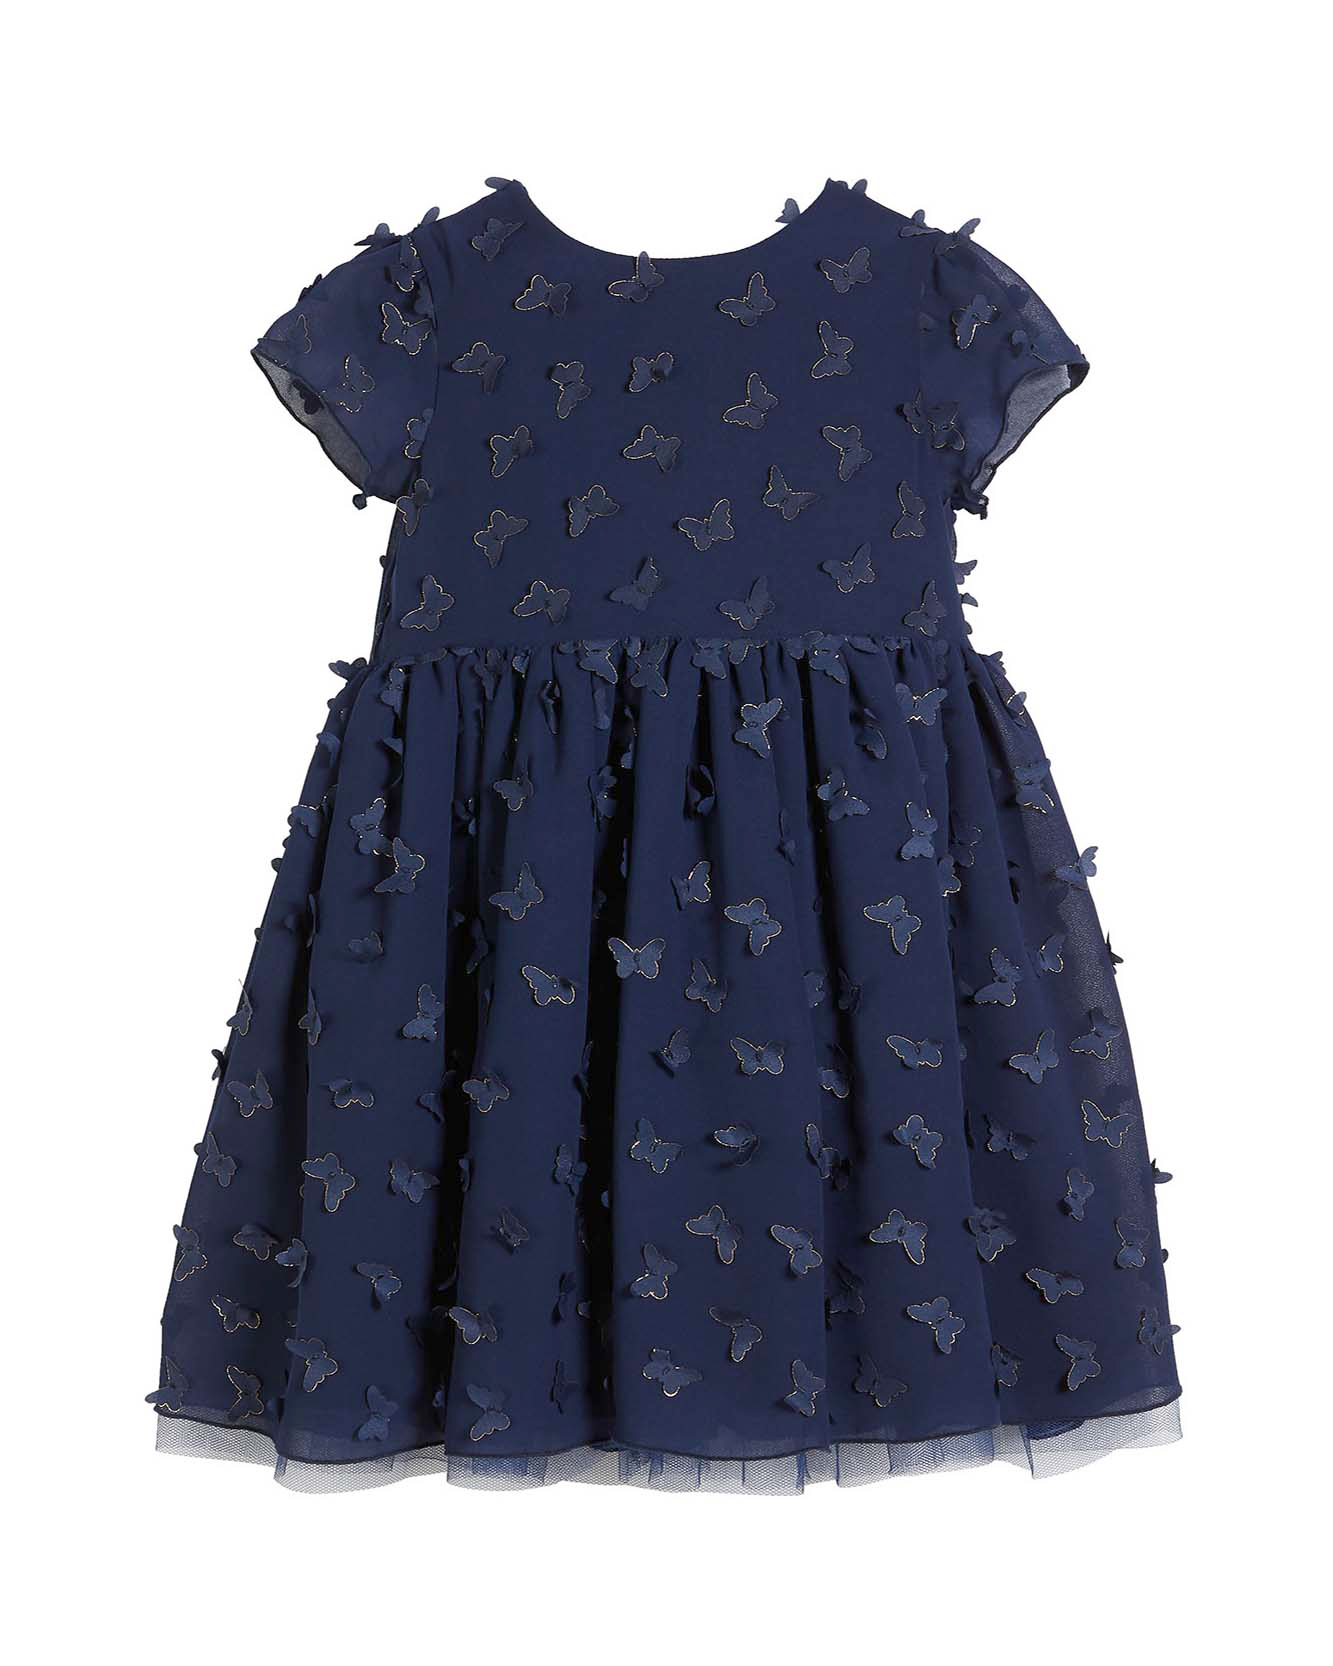 winter flower girl dress short-sleeved navy dress with applique butterflies